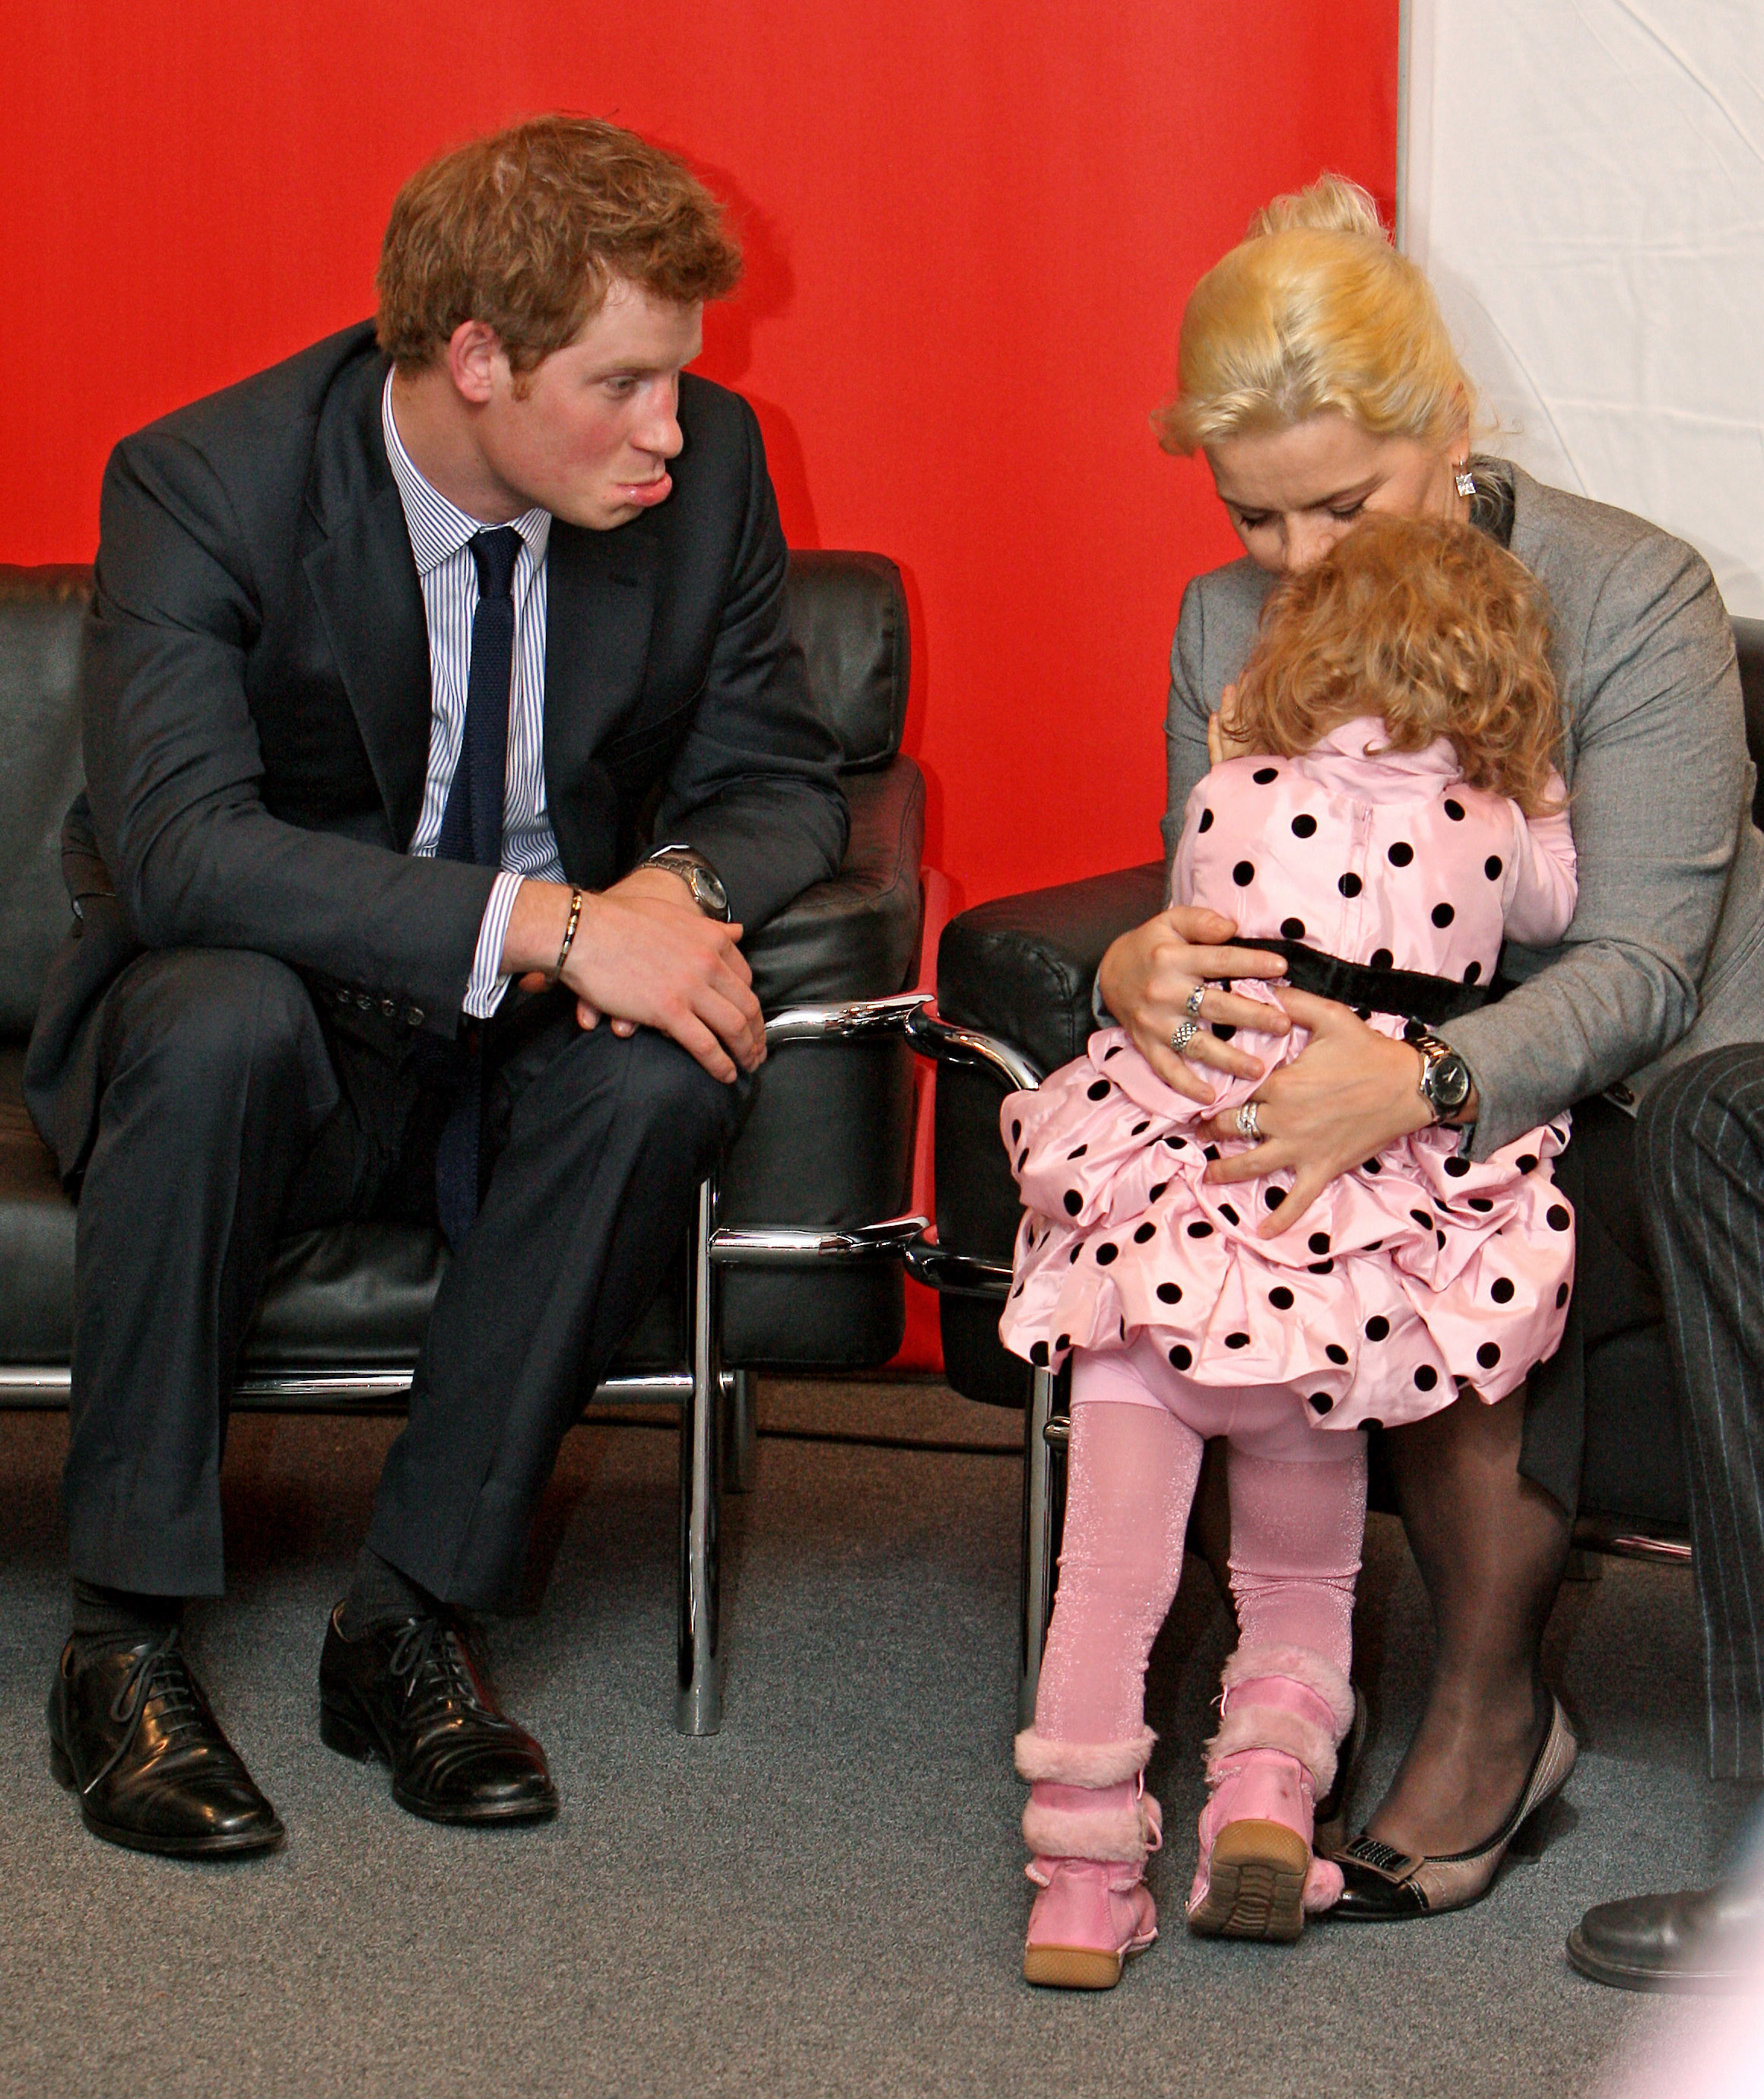 Prince Harry Makes A Pouty Face At A Little Girl During A